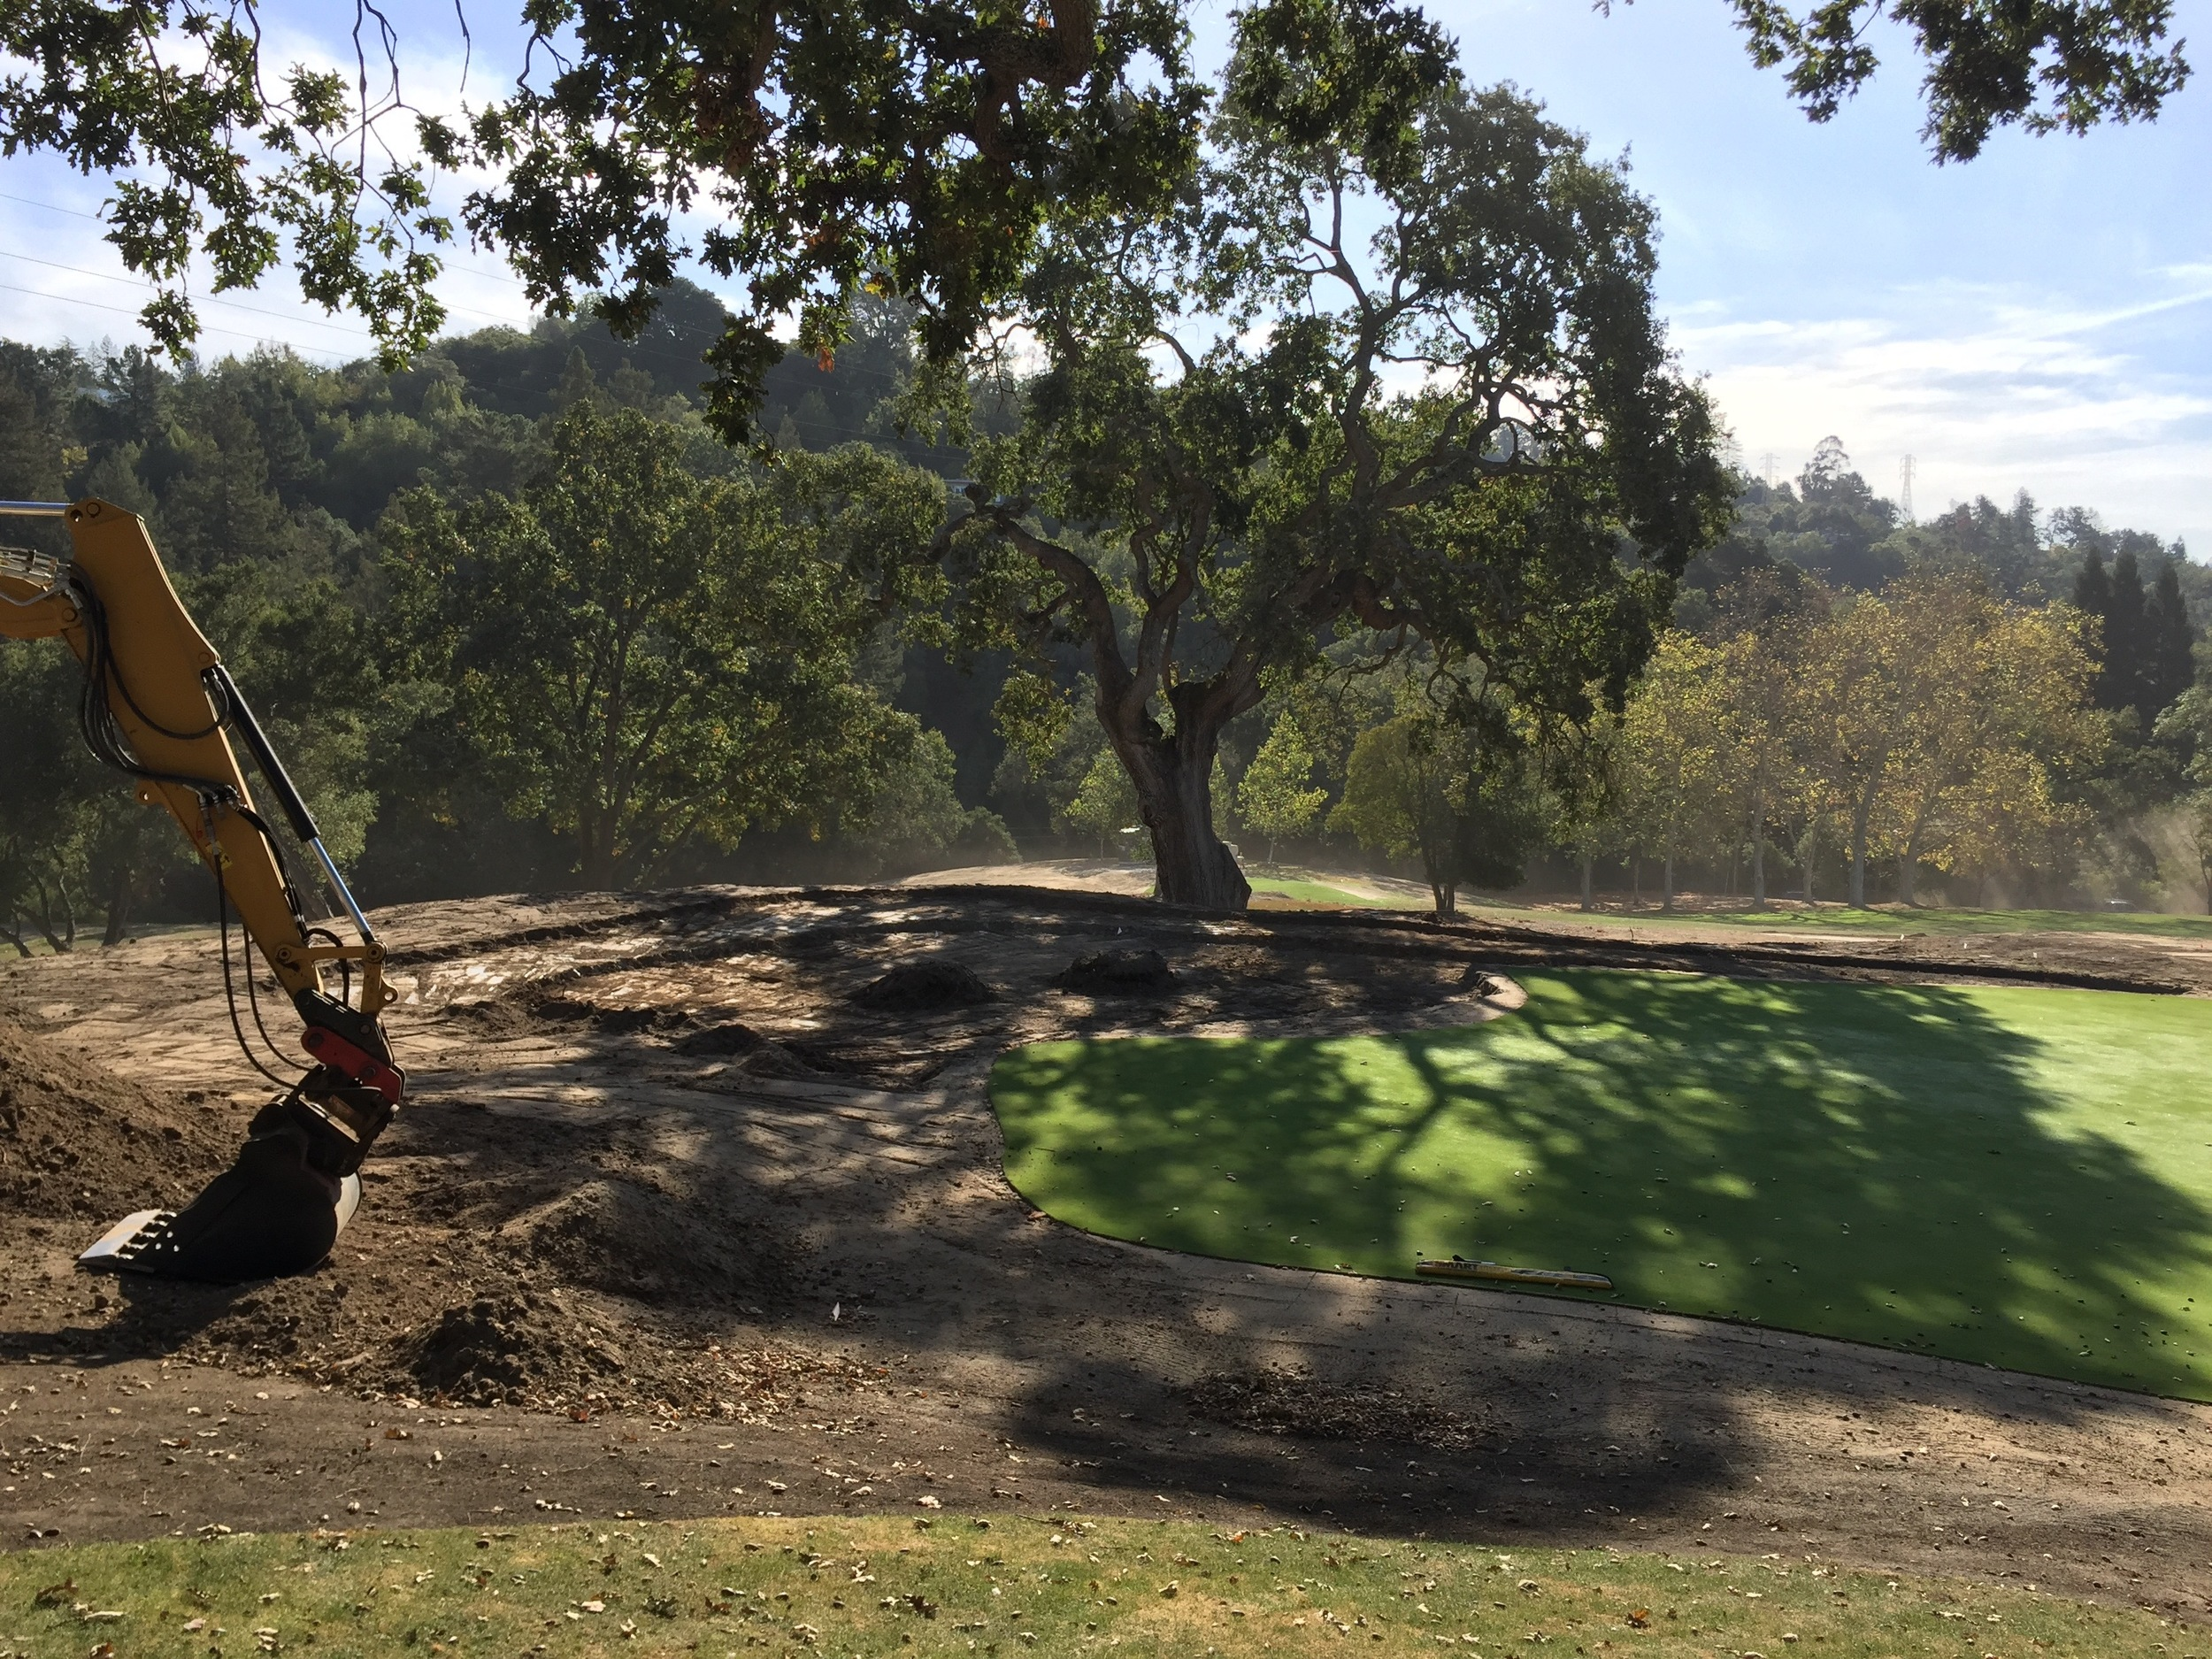 hochstein-design-orinda-cc-hole-2-construction-1.jpg